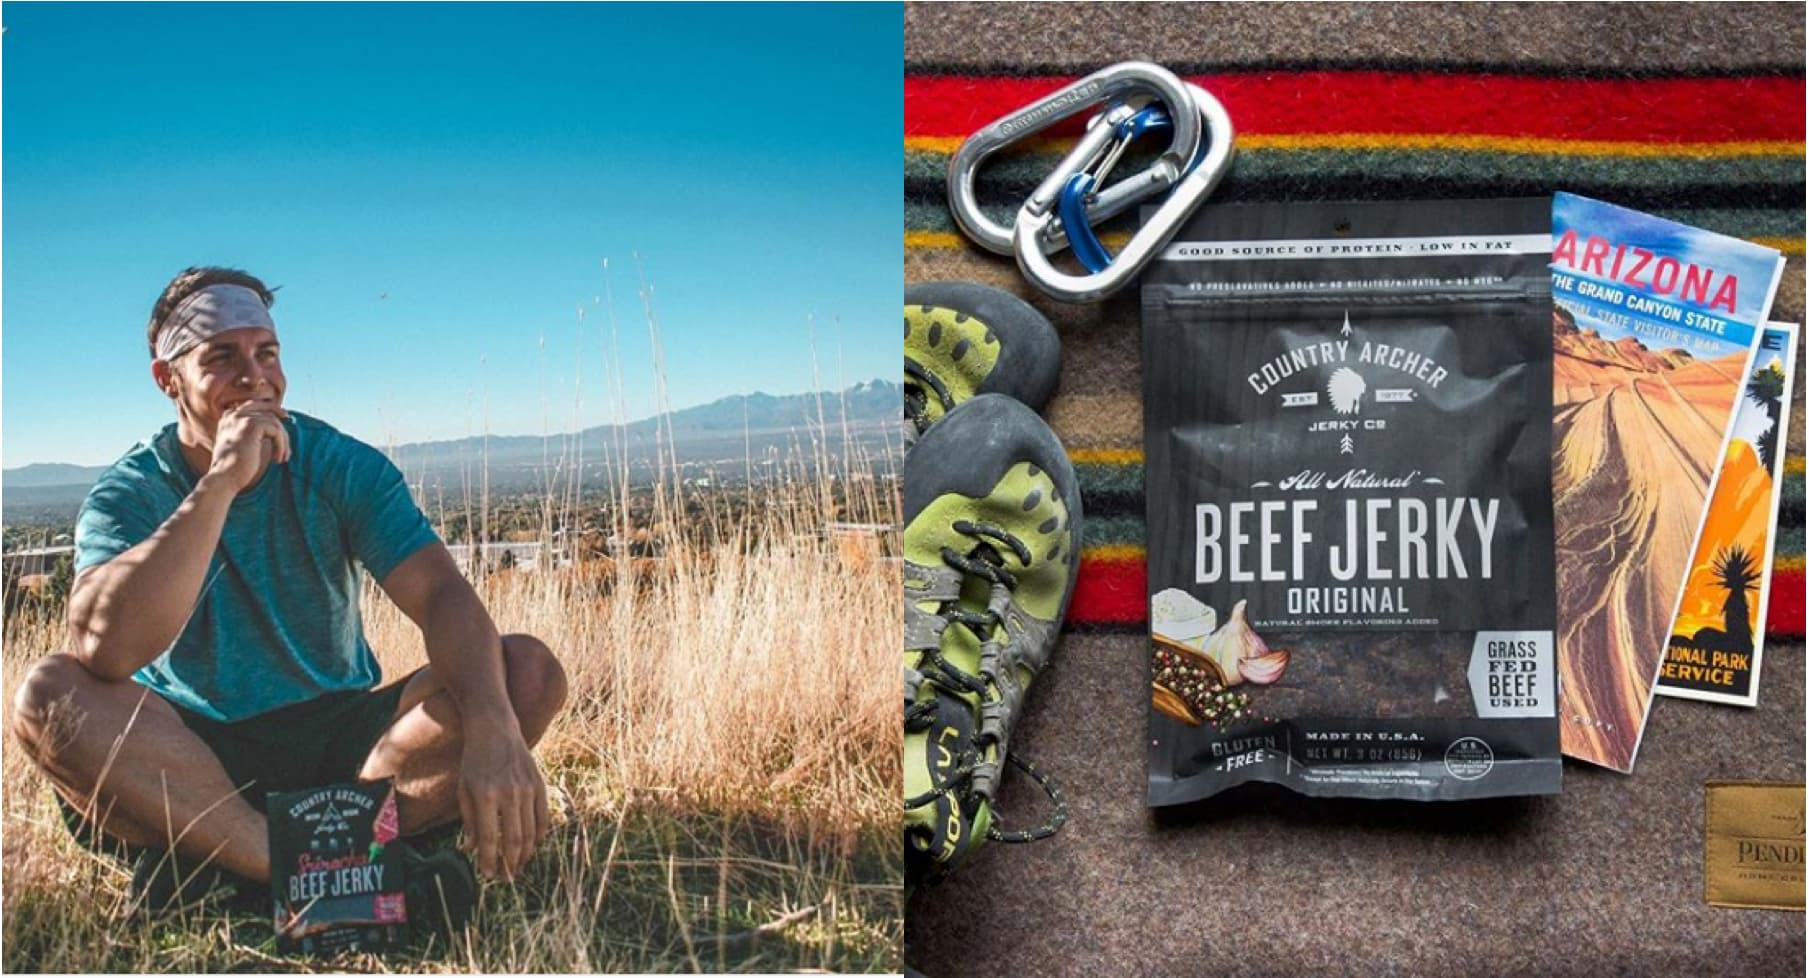 (left) a man sitting on the ground eating a healthy jerky bar (right) a pack of country archer beef jerky sits amongst hiking and climbing gear